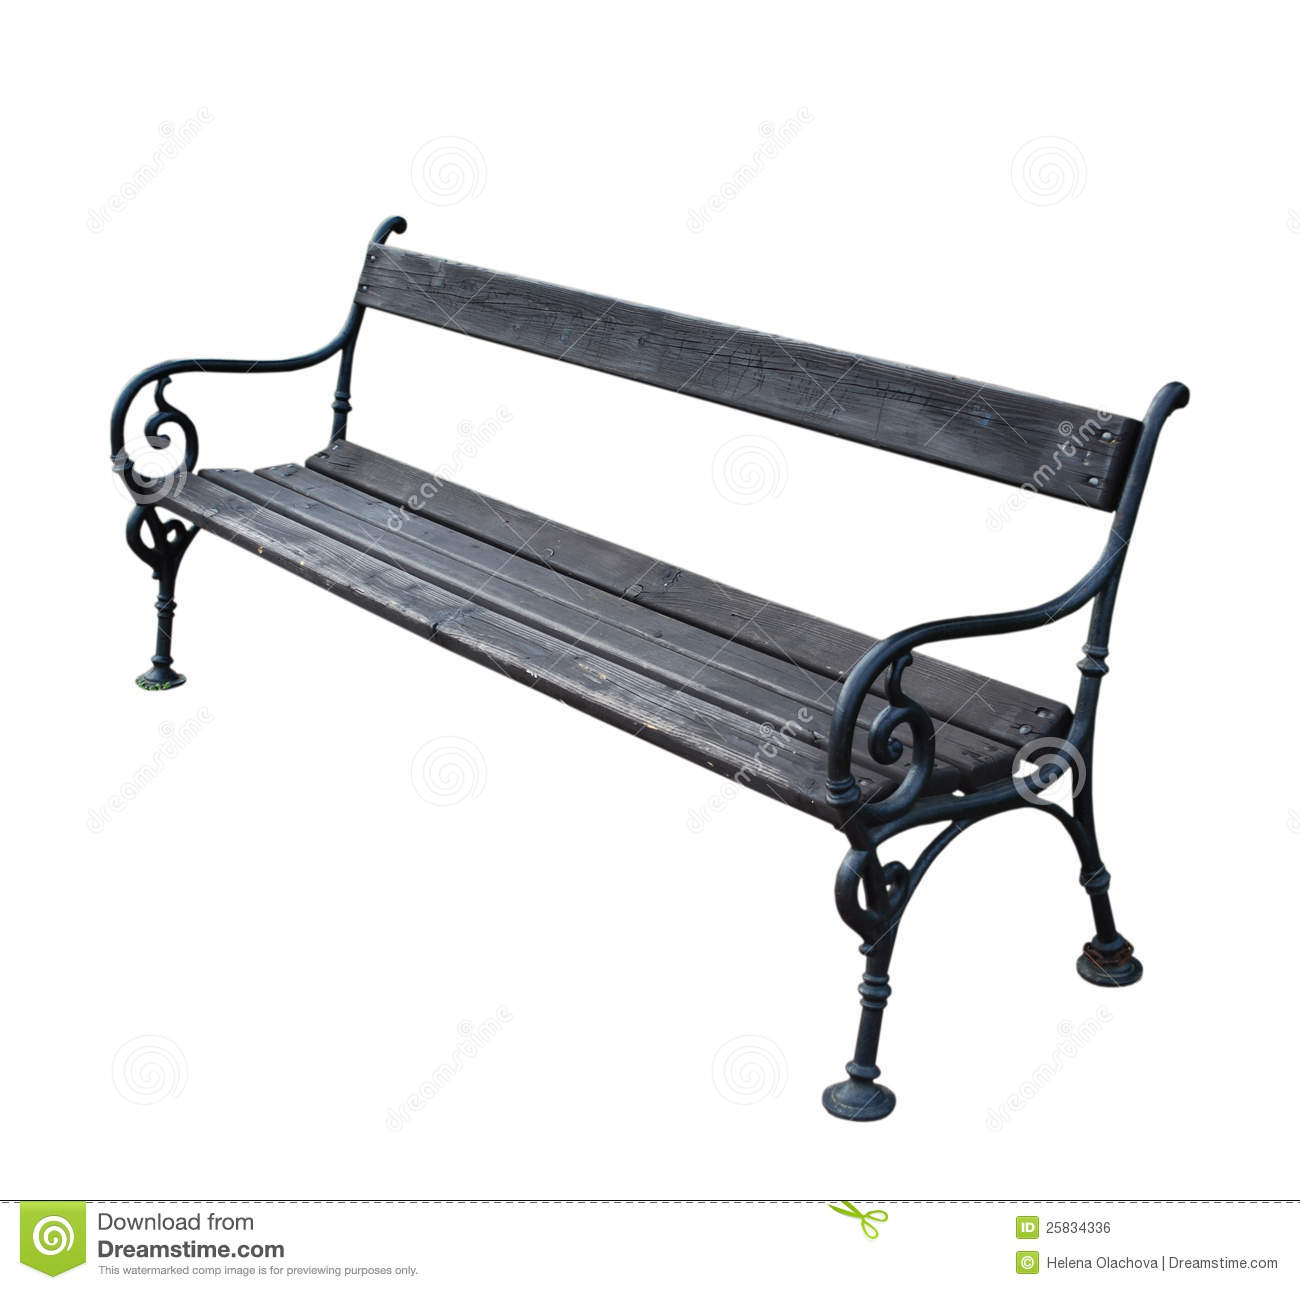 Royalty Free Stock Image  Park Bench Isolated on White BackgroundPark Bench Clipart Black And White